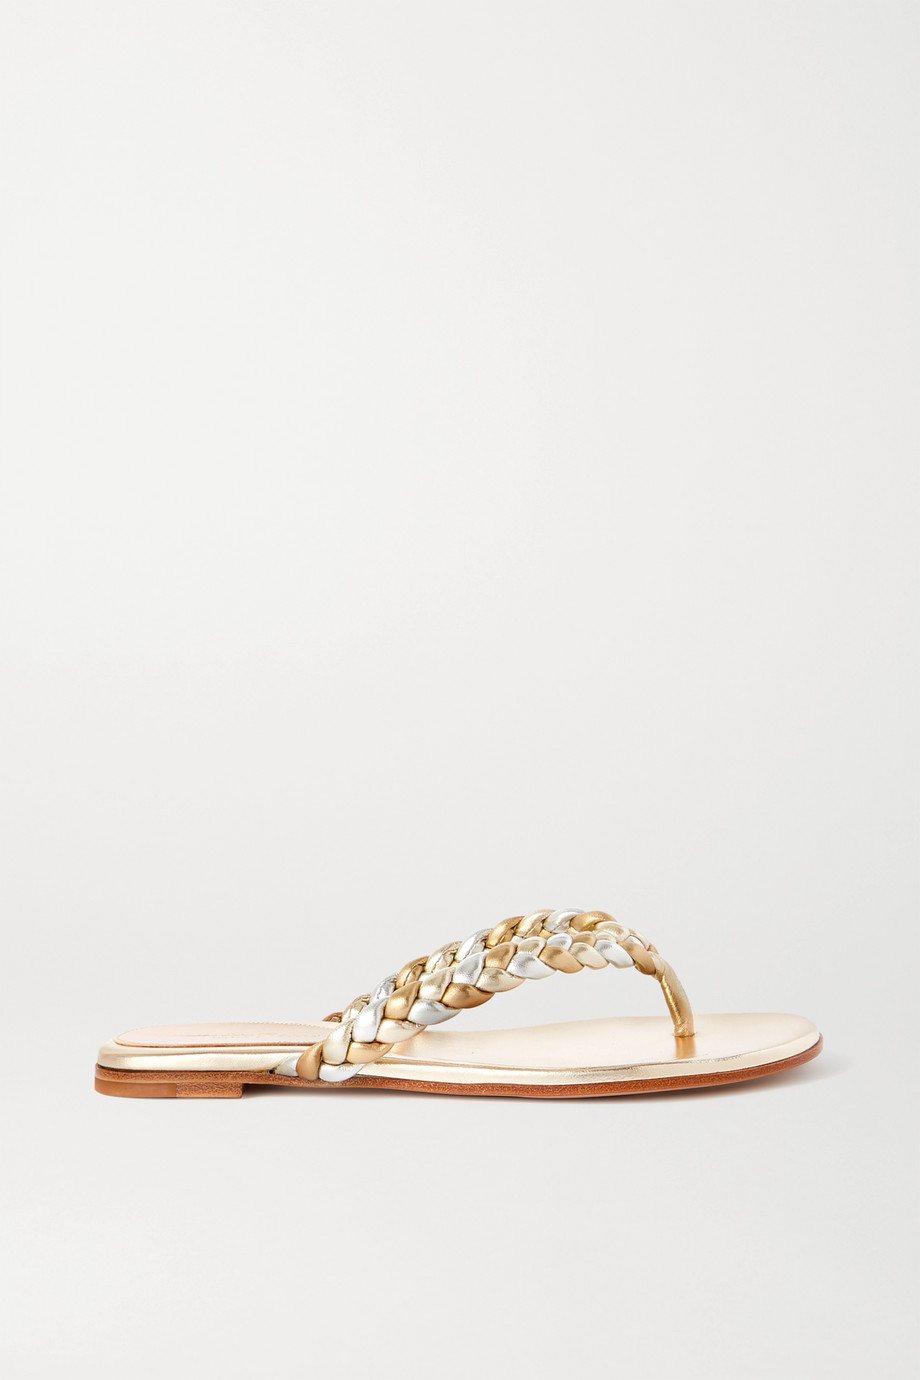 Gianvito Rossi Metallic braided leather flip flops